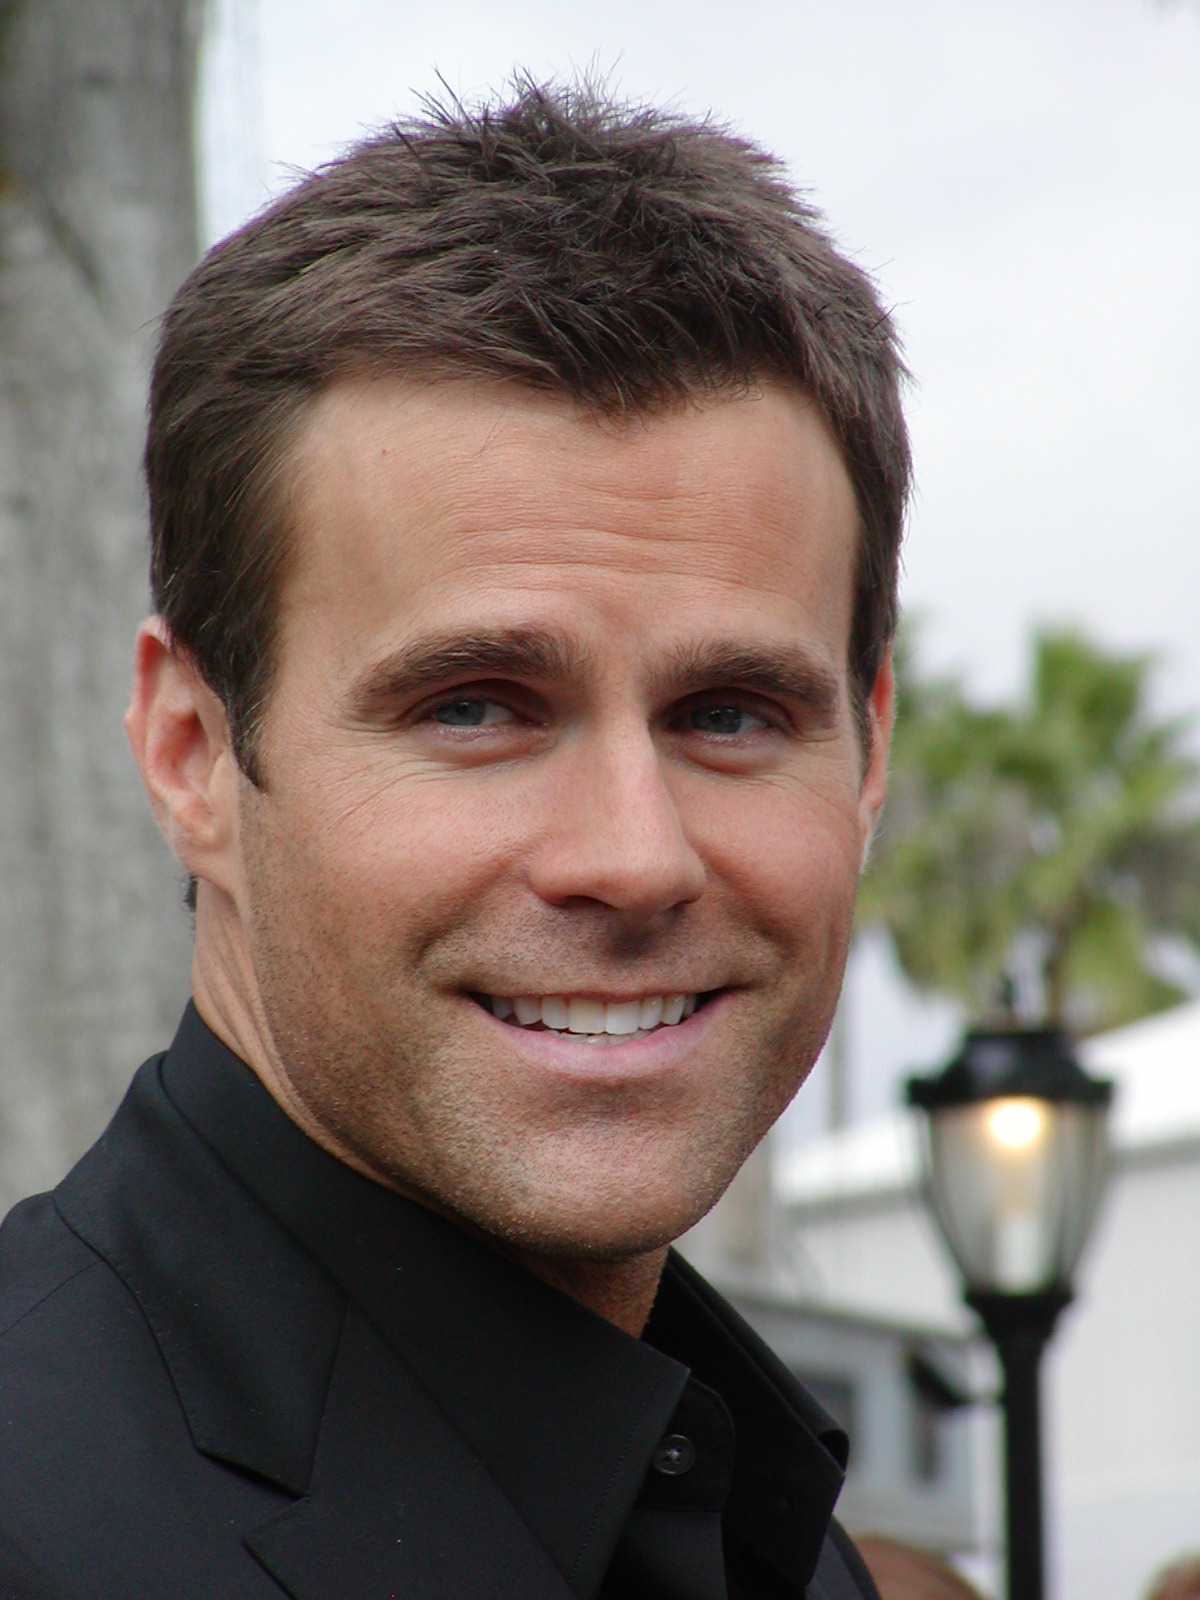 cameron mathison wifecameron mathison wife, cameron mathison age, cameron mathison net worth, cameron mathison hallmark movies, cameron mathison movies, cameron mathison instagram, cameron mathison imdb, cameron mathison family, cameron mathison dwts, cameron mathison general hospital, cameron mathison brother, cameron mathison twitter, cameron mathison christmas movie, cameron mathison spouse, cameron mathison photos, cameron mathison weight loss, cameron mathison food network, cameron mathison hallmark christmas movies, cameron mathison facebook, cameron mathison 2016